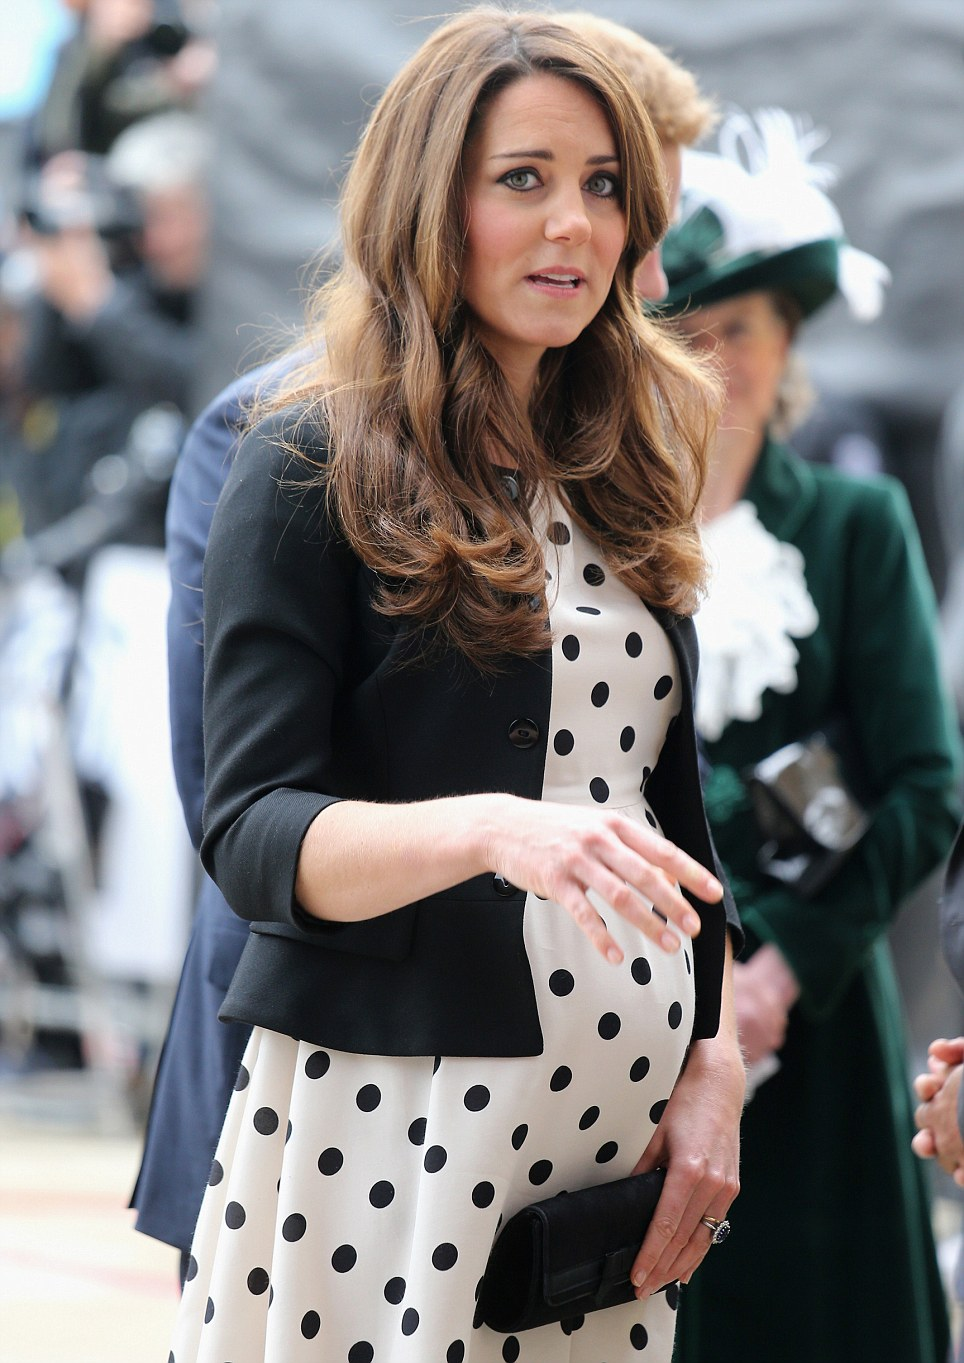 everything up, I think I have a lady crush on Kate. Well, her closet